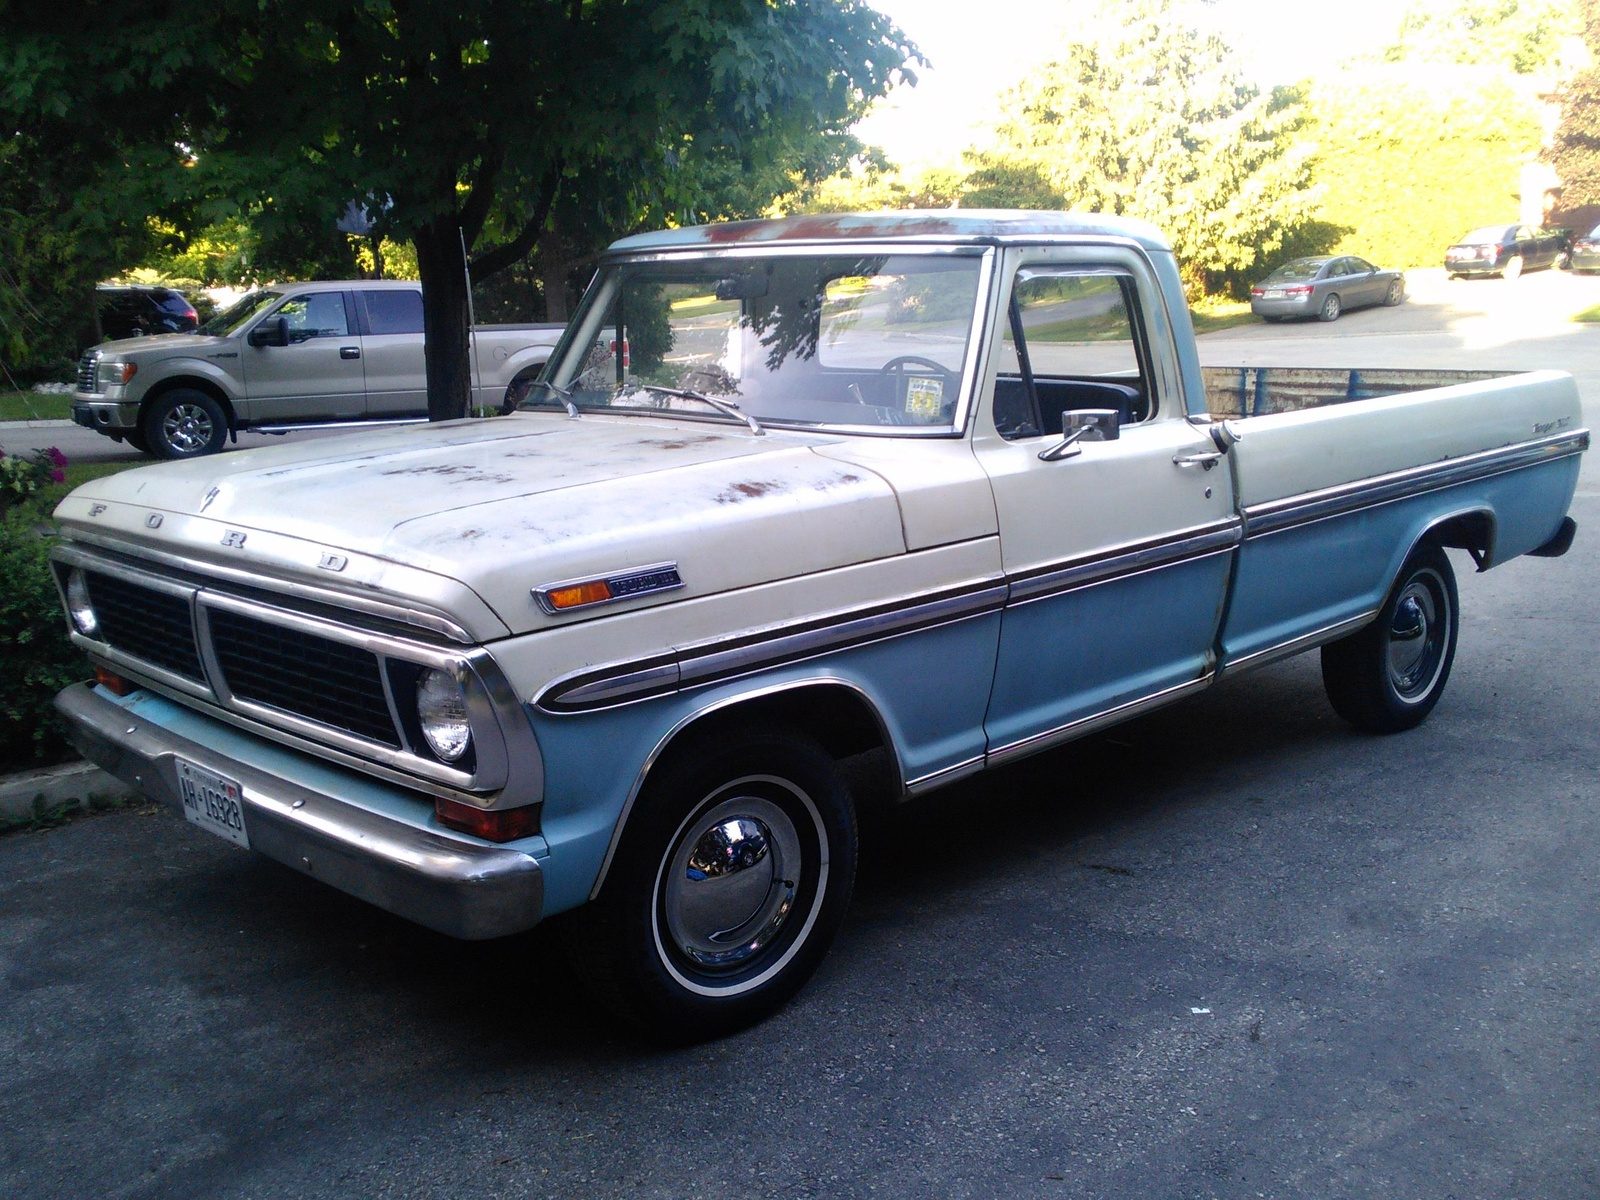 ford f 100 questions i have a 1970 f100 with a 302, after runningi have a 1970 f100 with a 302, after running for a while the engine stalls starving for gas if i let the truck sit for a while the truck starts up